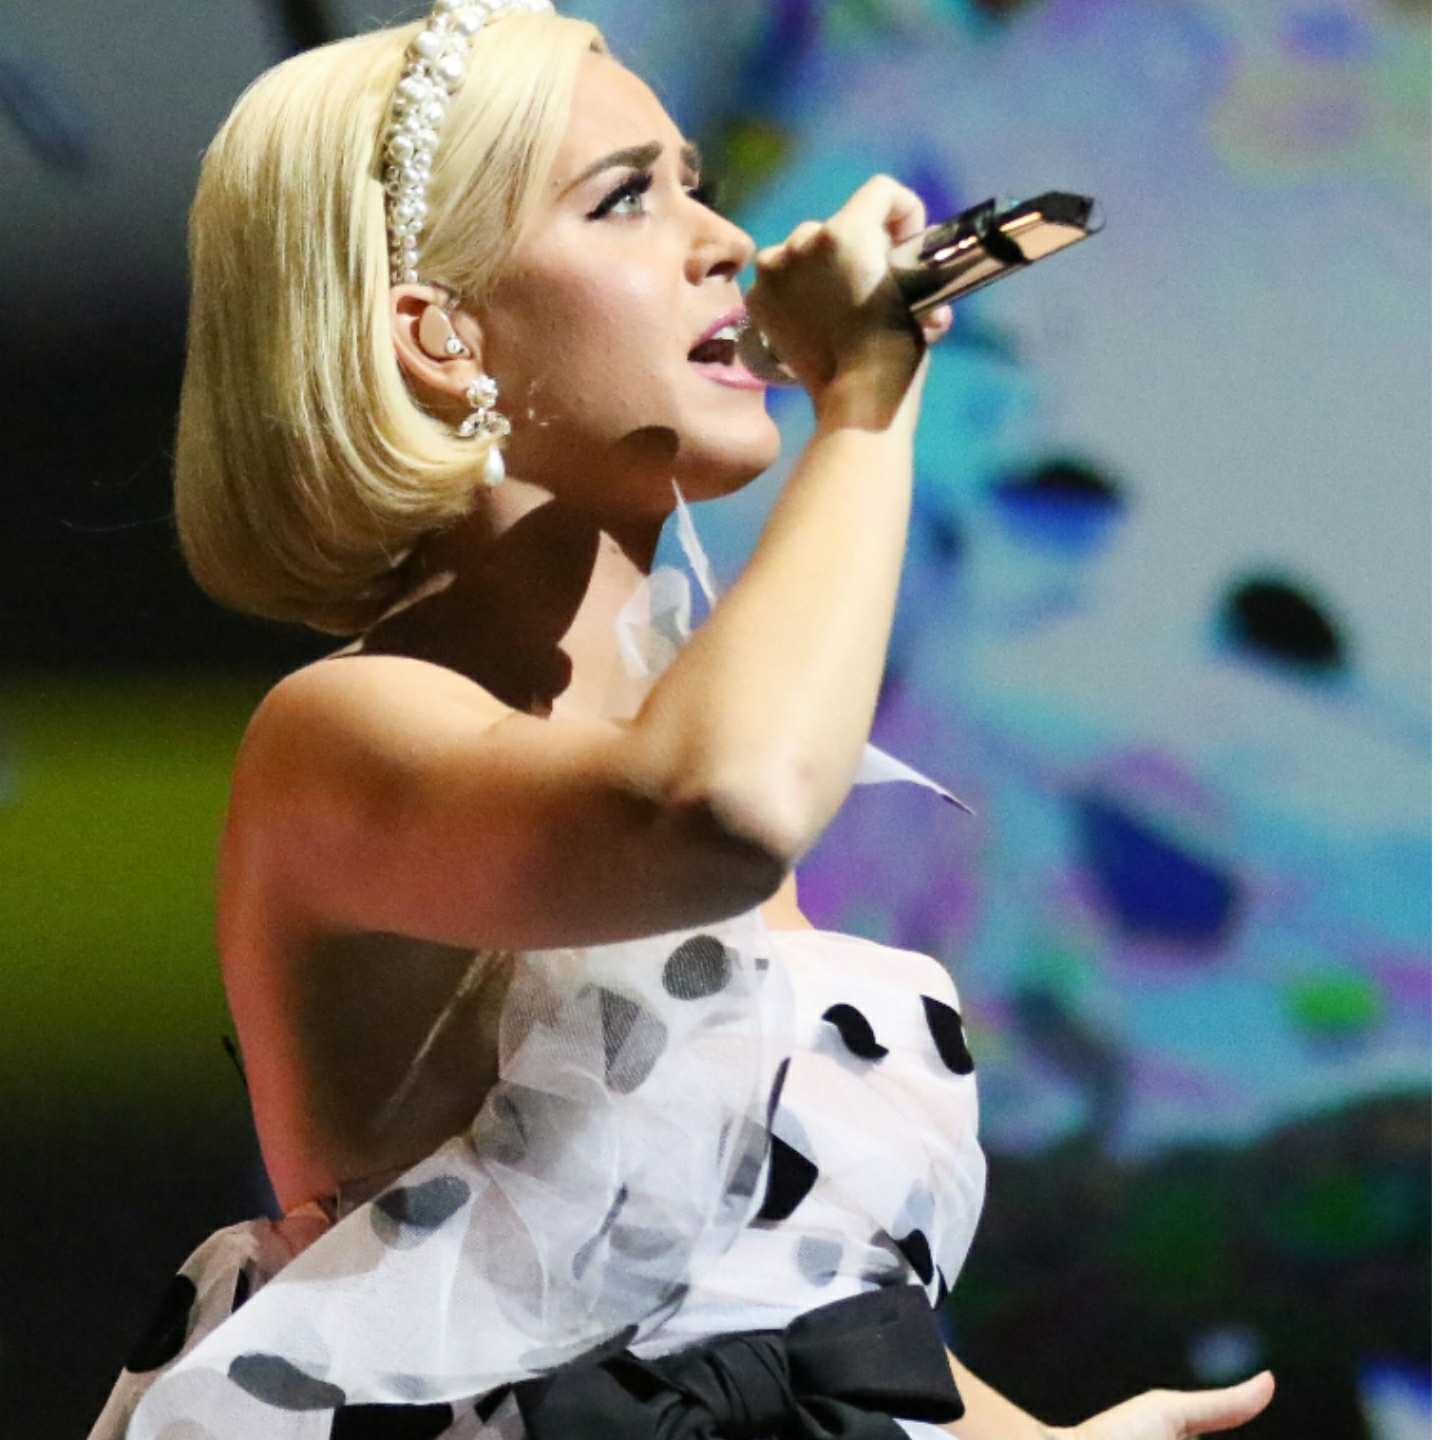 Katy Perry, David Lynch Foundation, Dave Barnhouser, 360 MAGAZINE